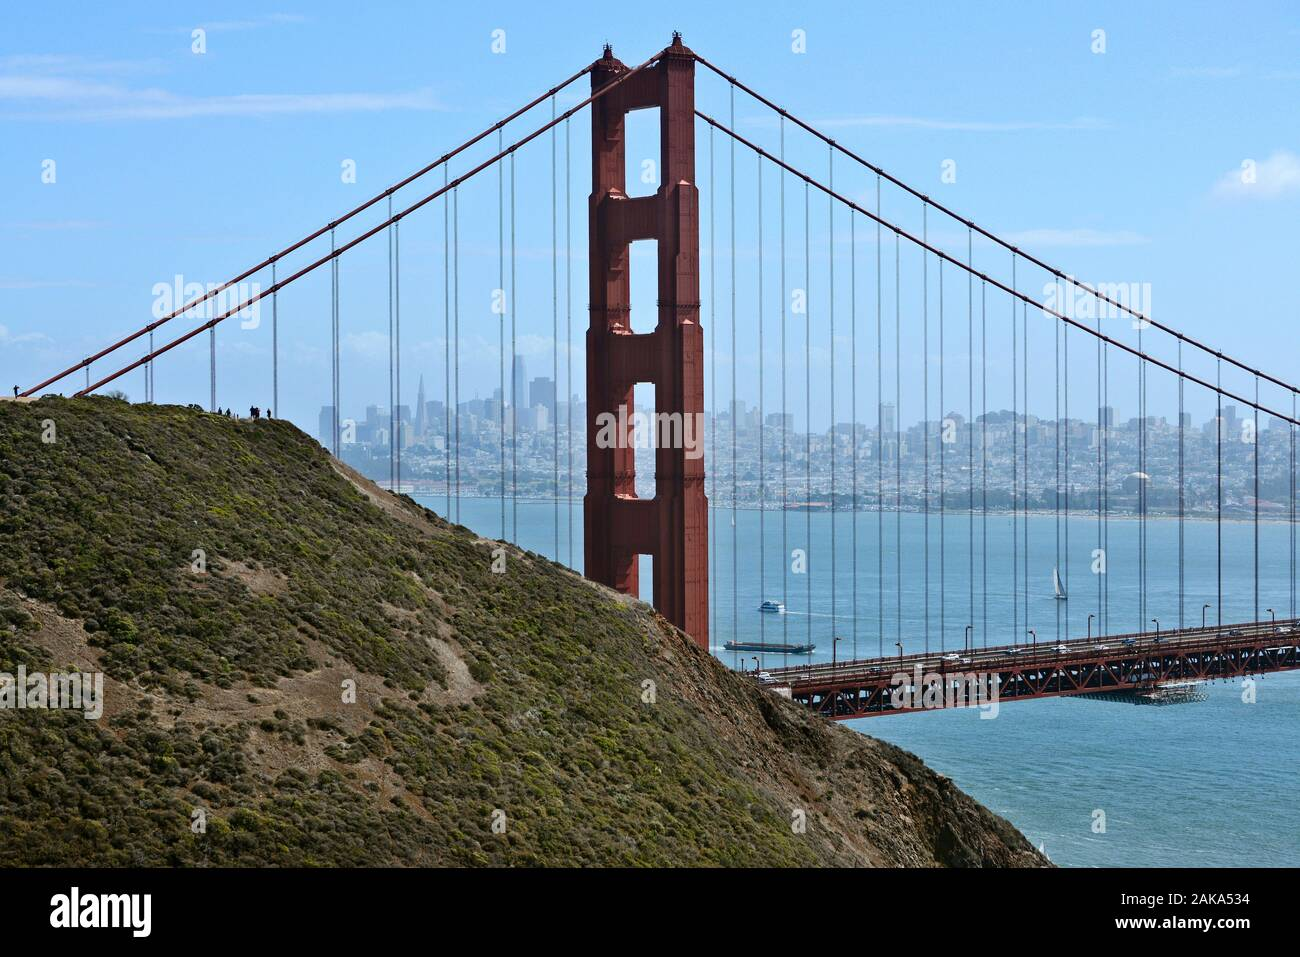 View of the Golden Gate Bridge and downtown from Golden Gate View Point at the northern end of the bridge, San Francisco, California, USA Stock Photo